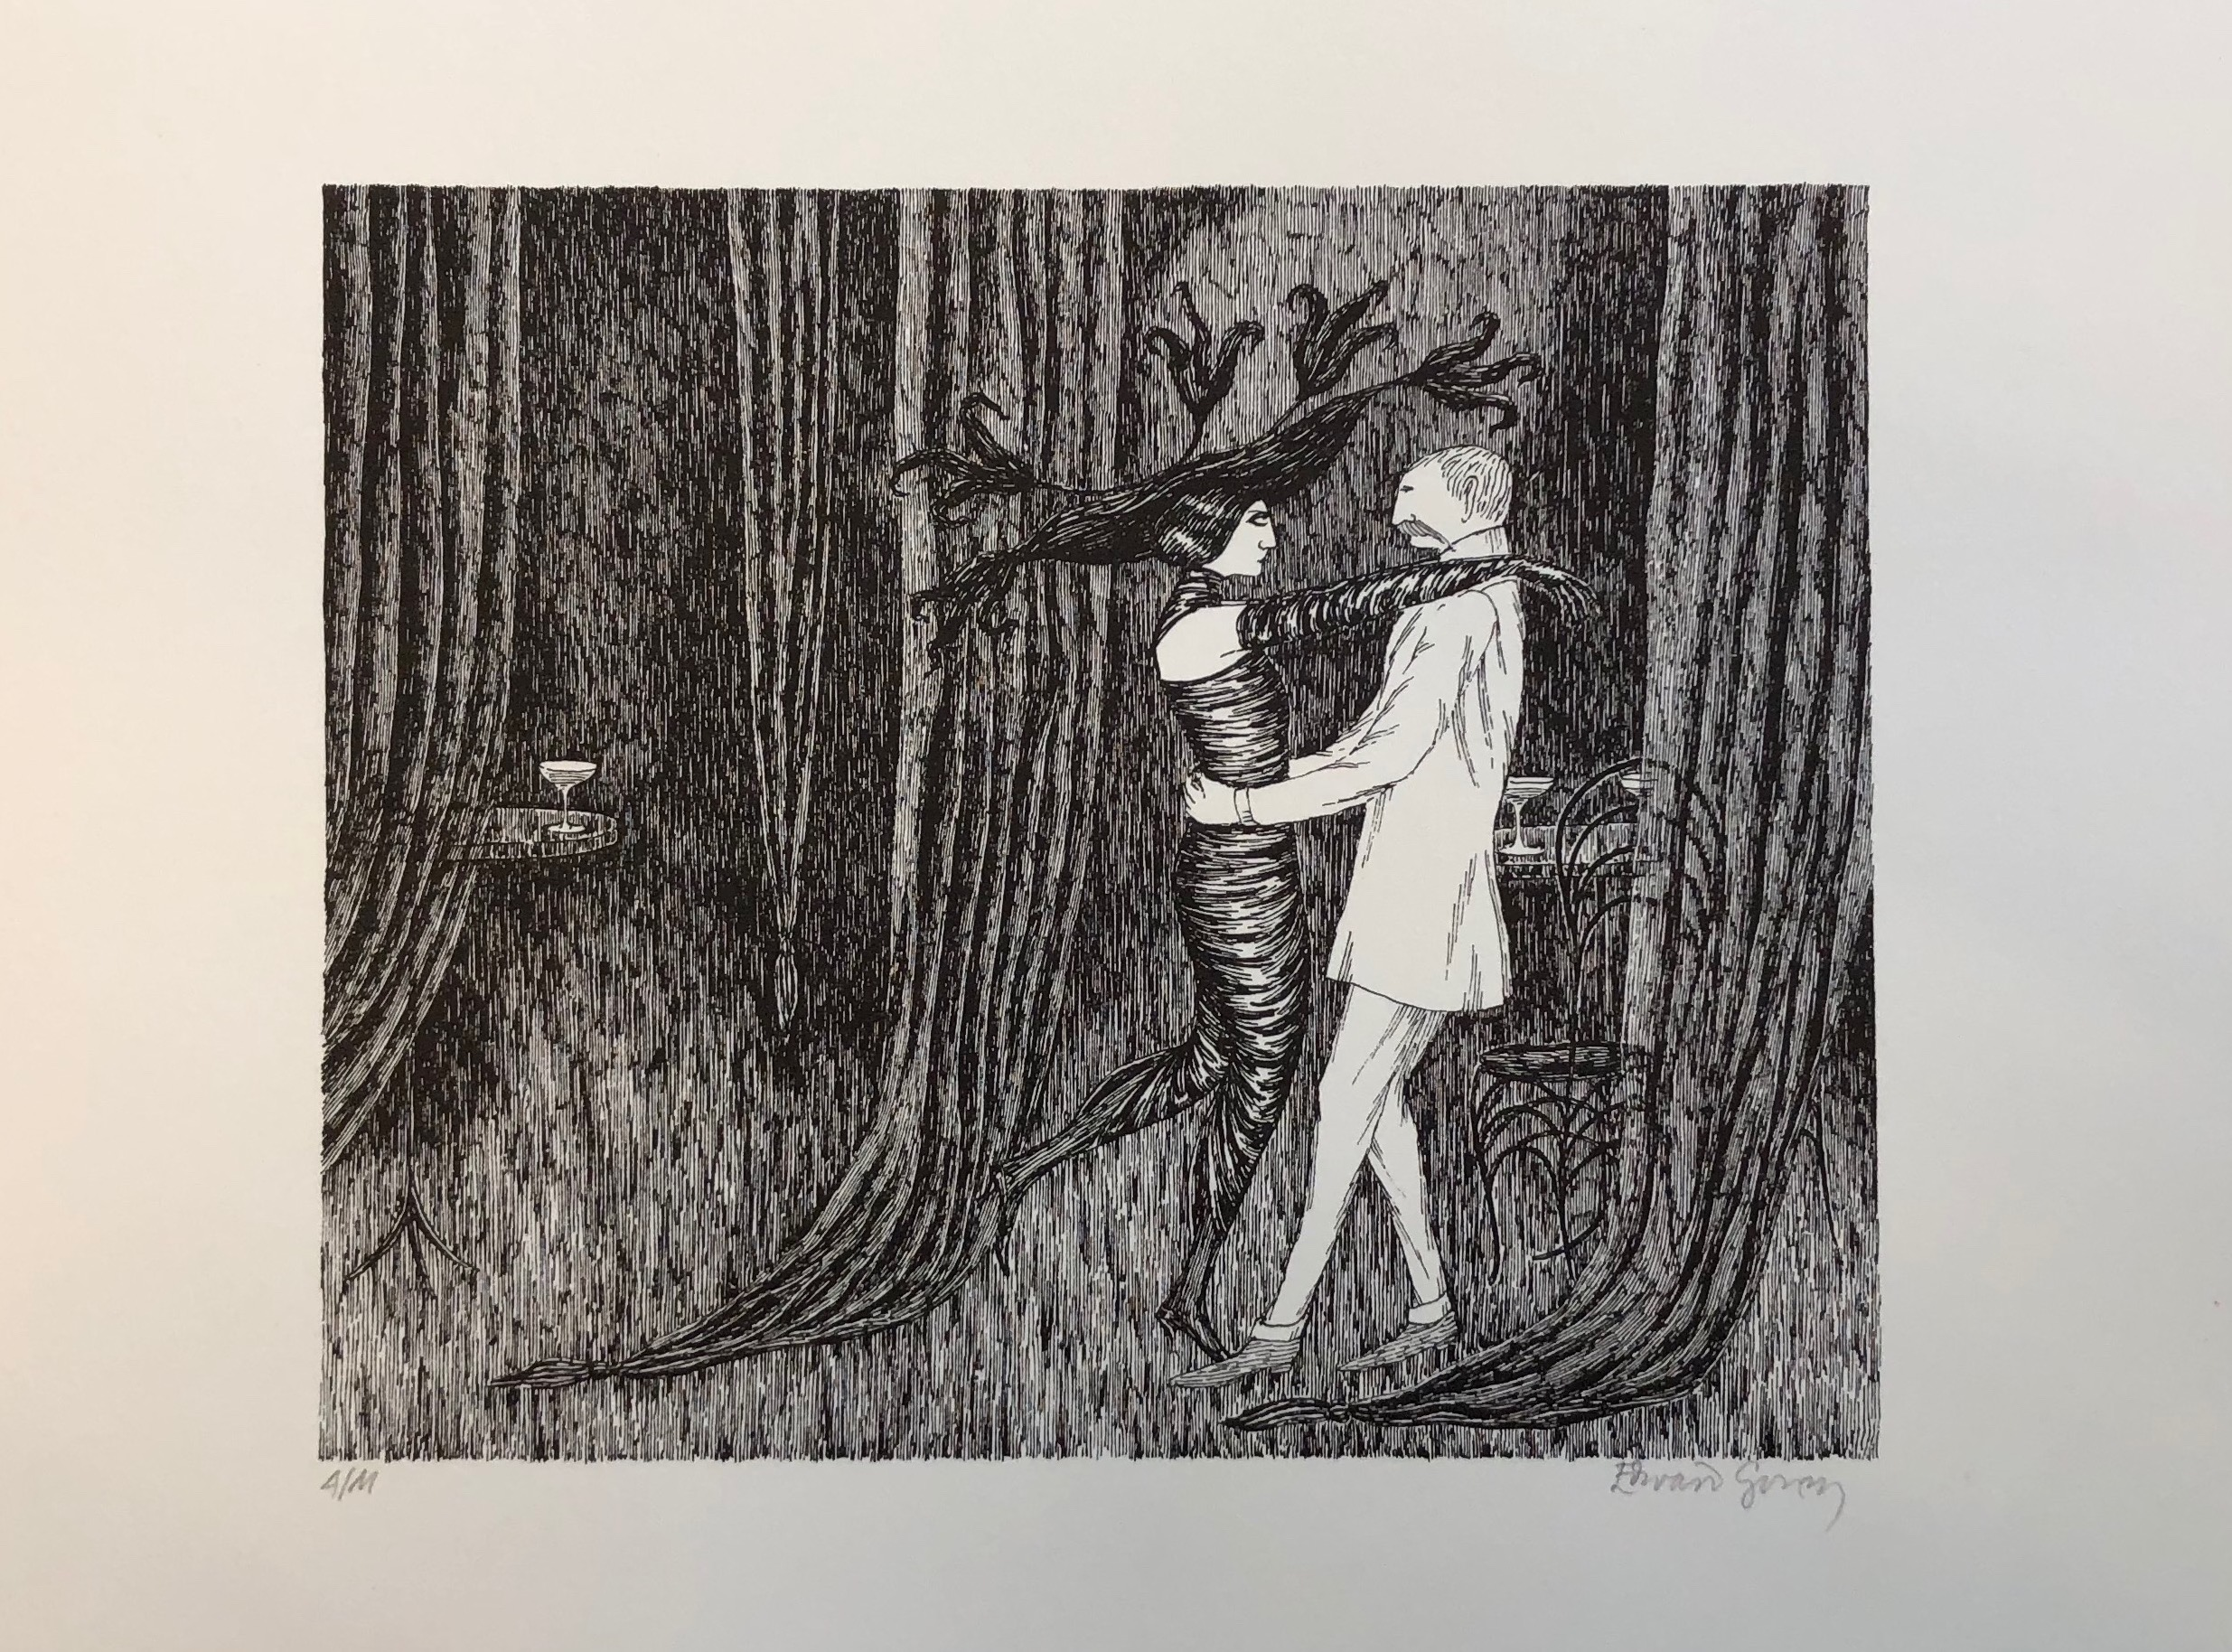 Edward Gorey sketch of a man and a woman dancing